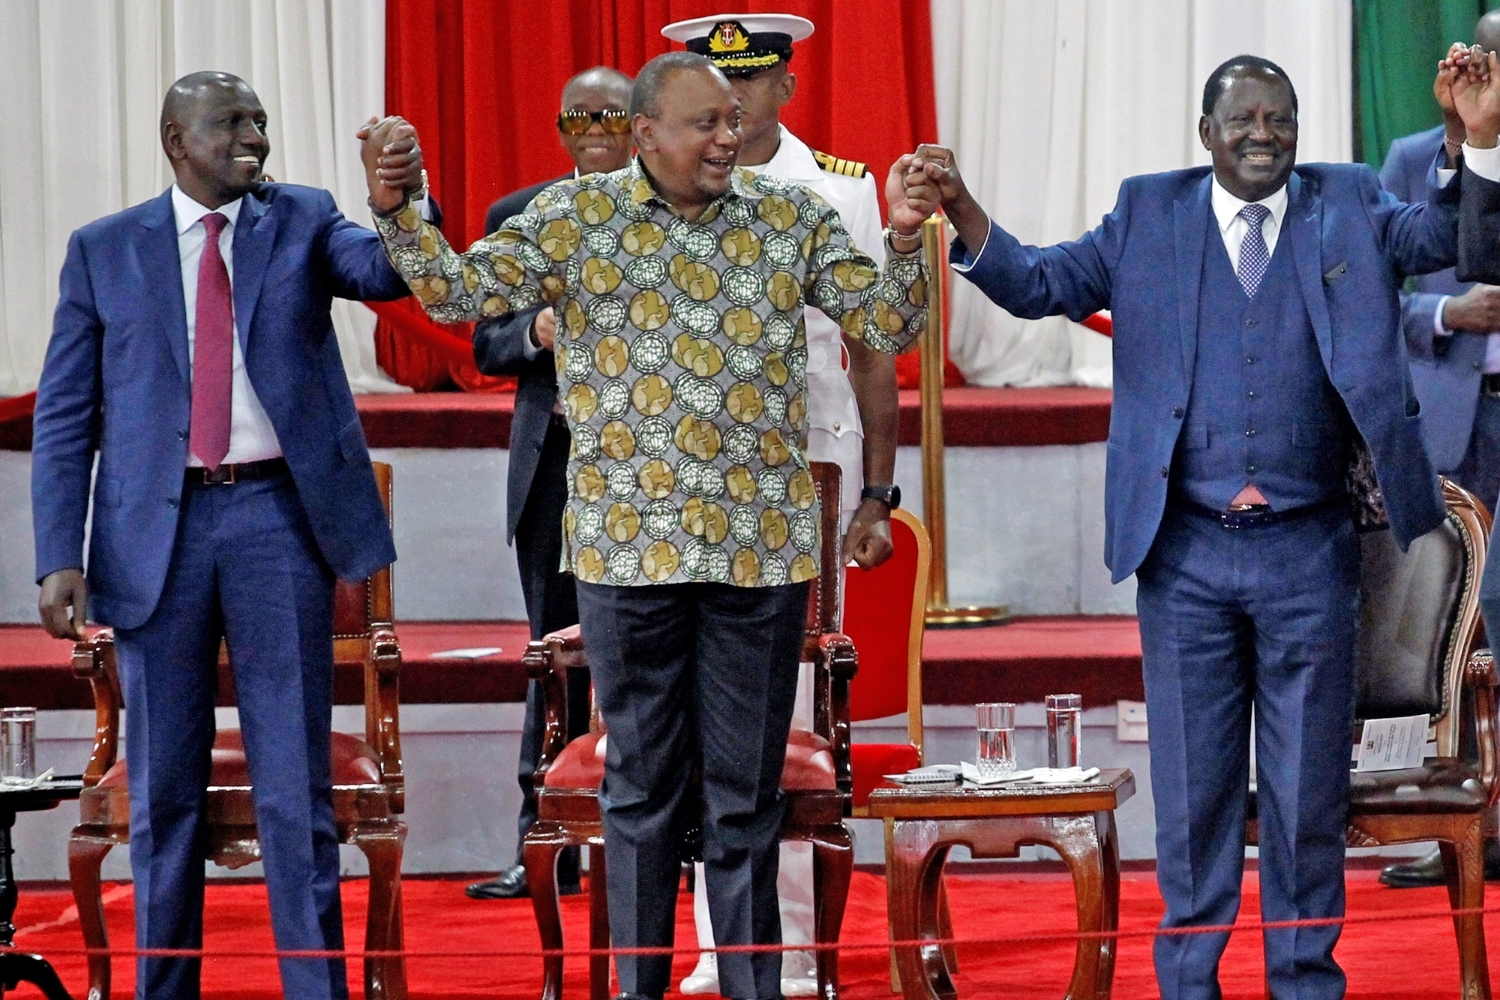 The never-ending battle between Odinga and Ruto to take Kenyatta's place at the State House